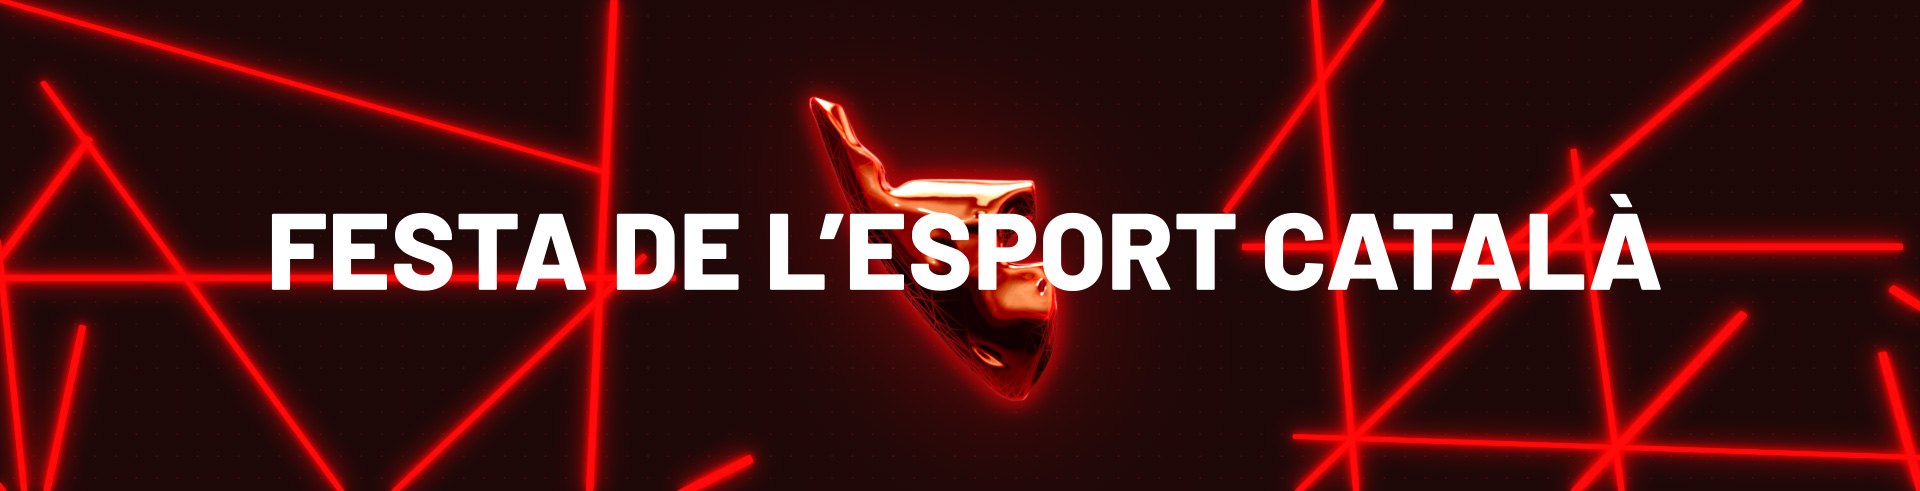 festa-esport-catala-2020-rebrand-motion-graphics-screenshot-10